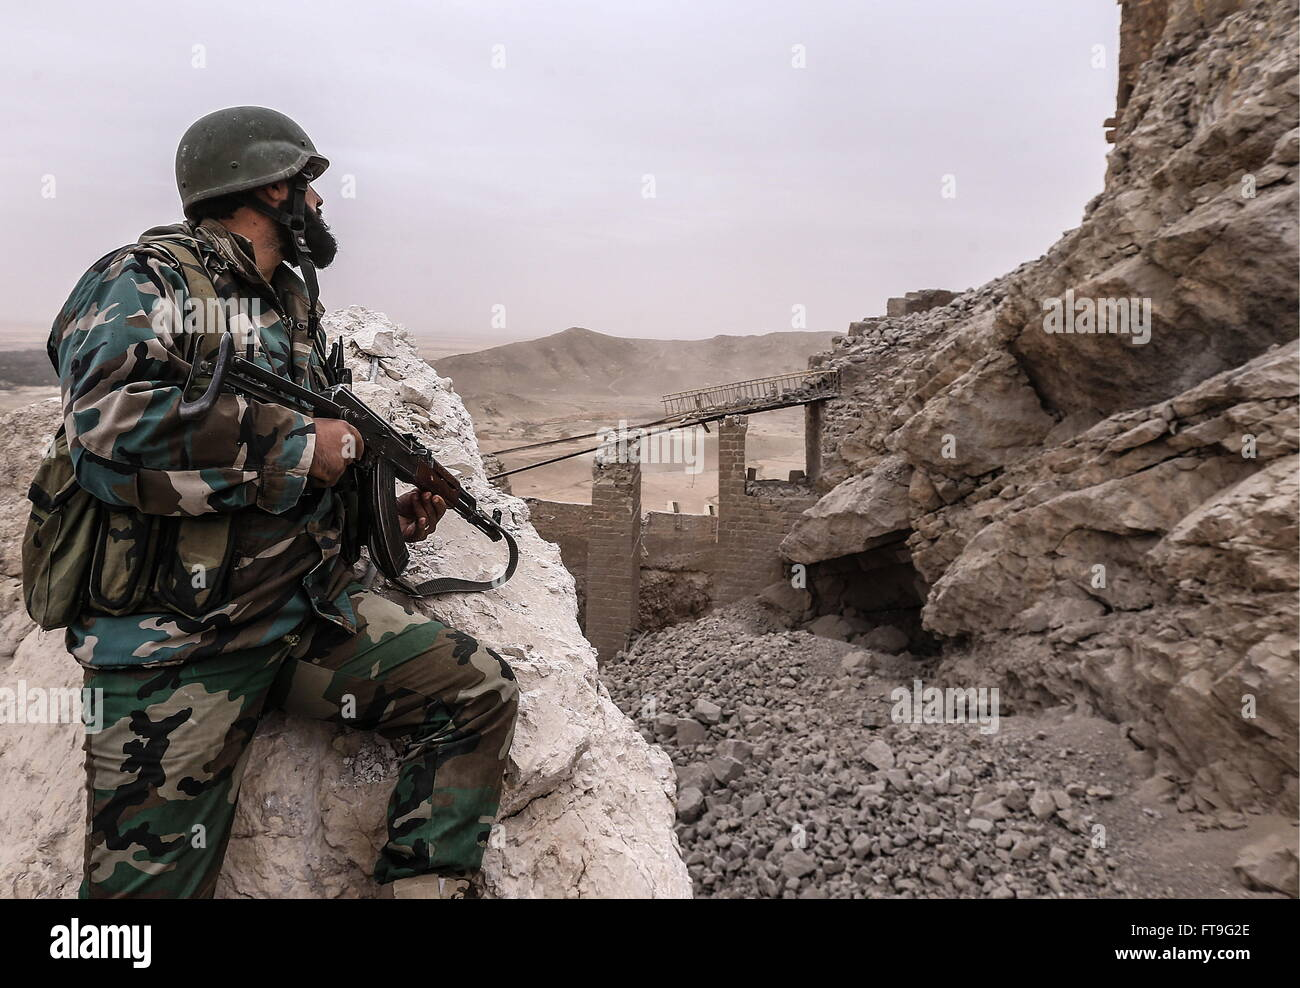 Palmyra, Syria. 26th Mar, 2016. A soldier of the Syrian government army at the Fahkr ad-Din al-Maani castle in Palmyra, - Stock Image